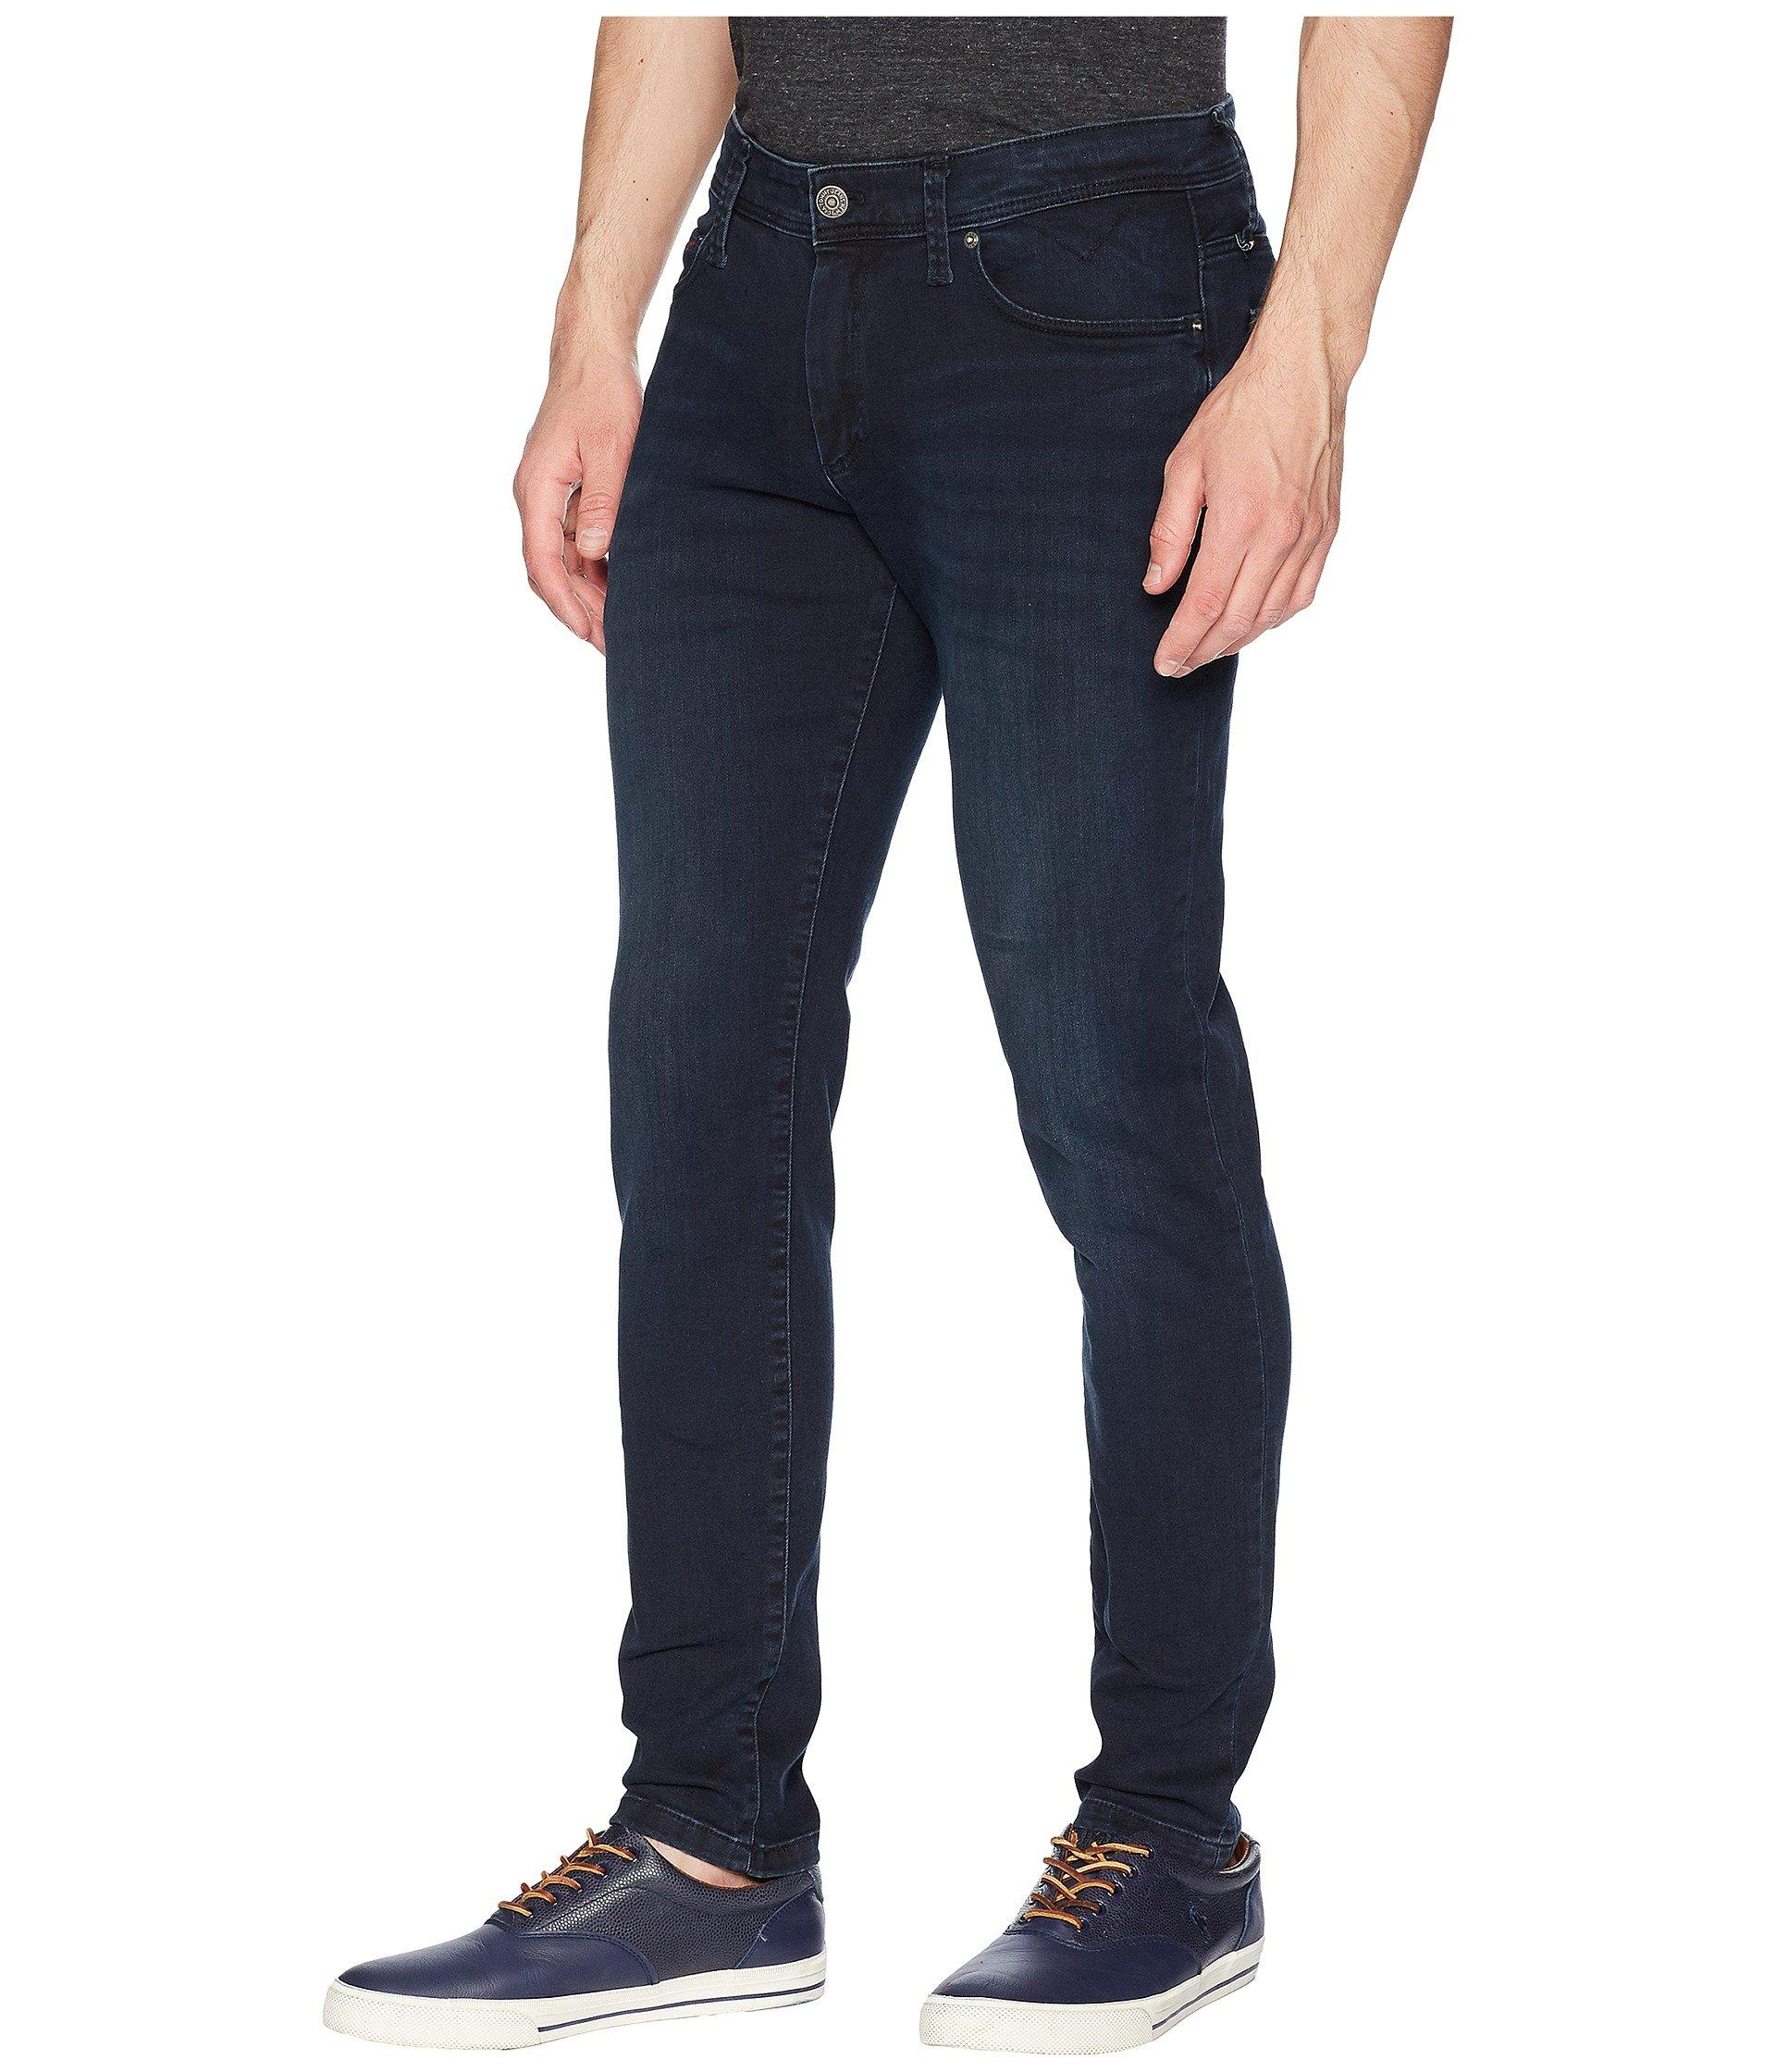 a5b51c22c Lyst - Tommy Hilfiger Simon Skinny Jeans in Blue for Men